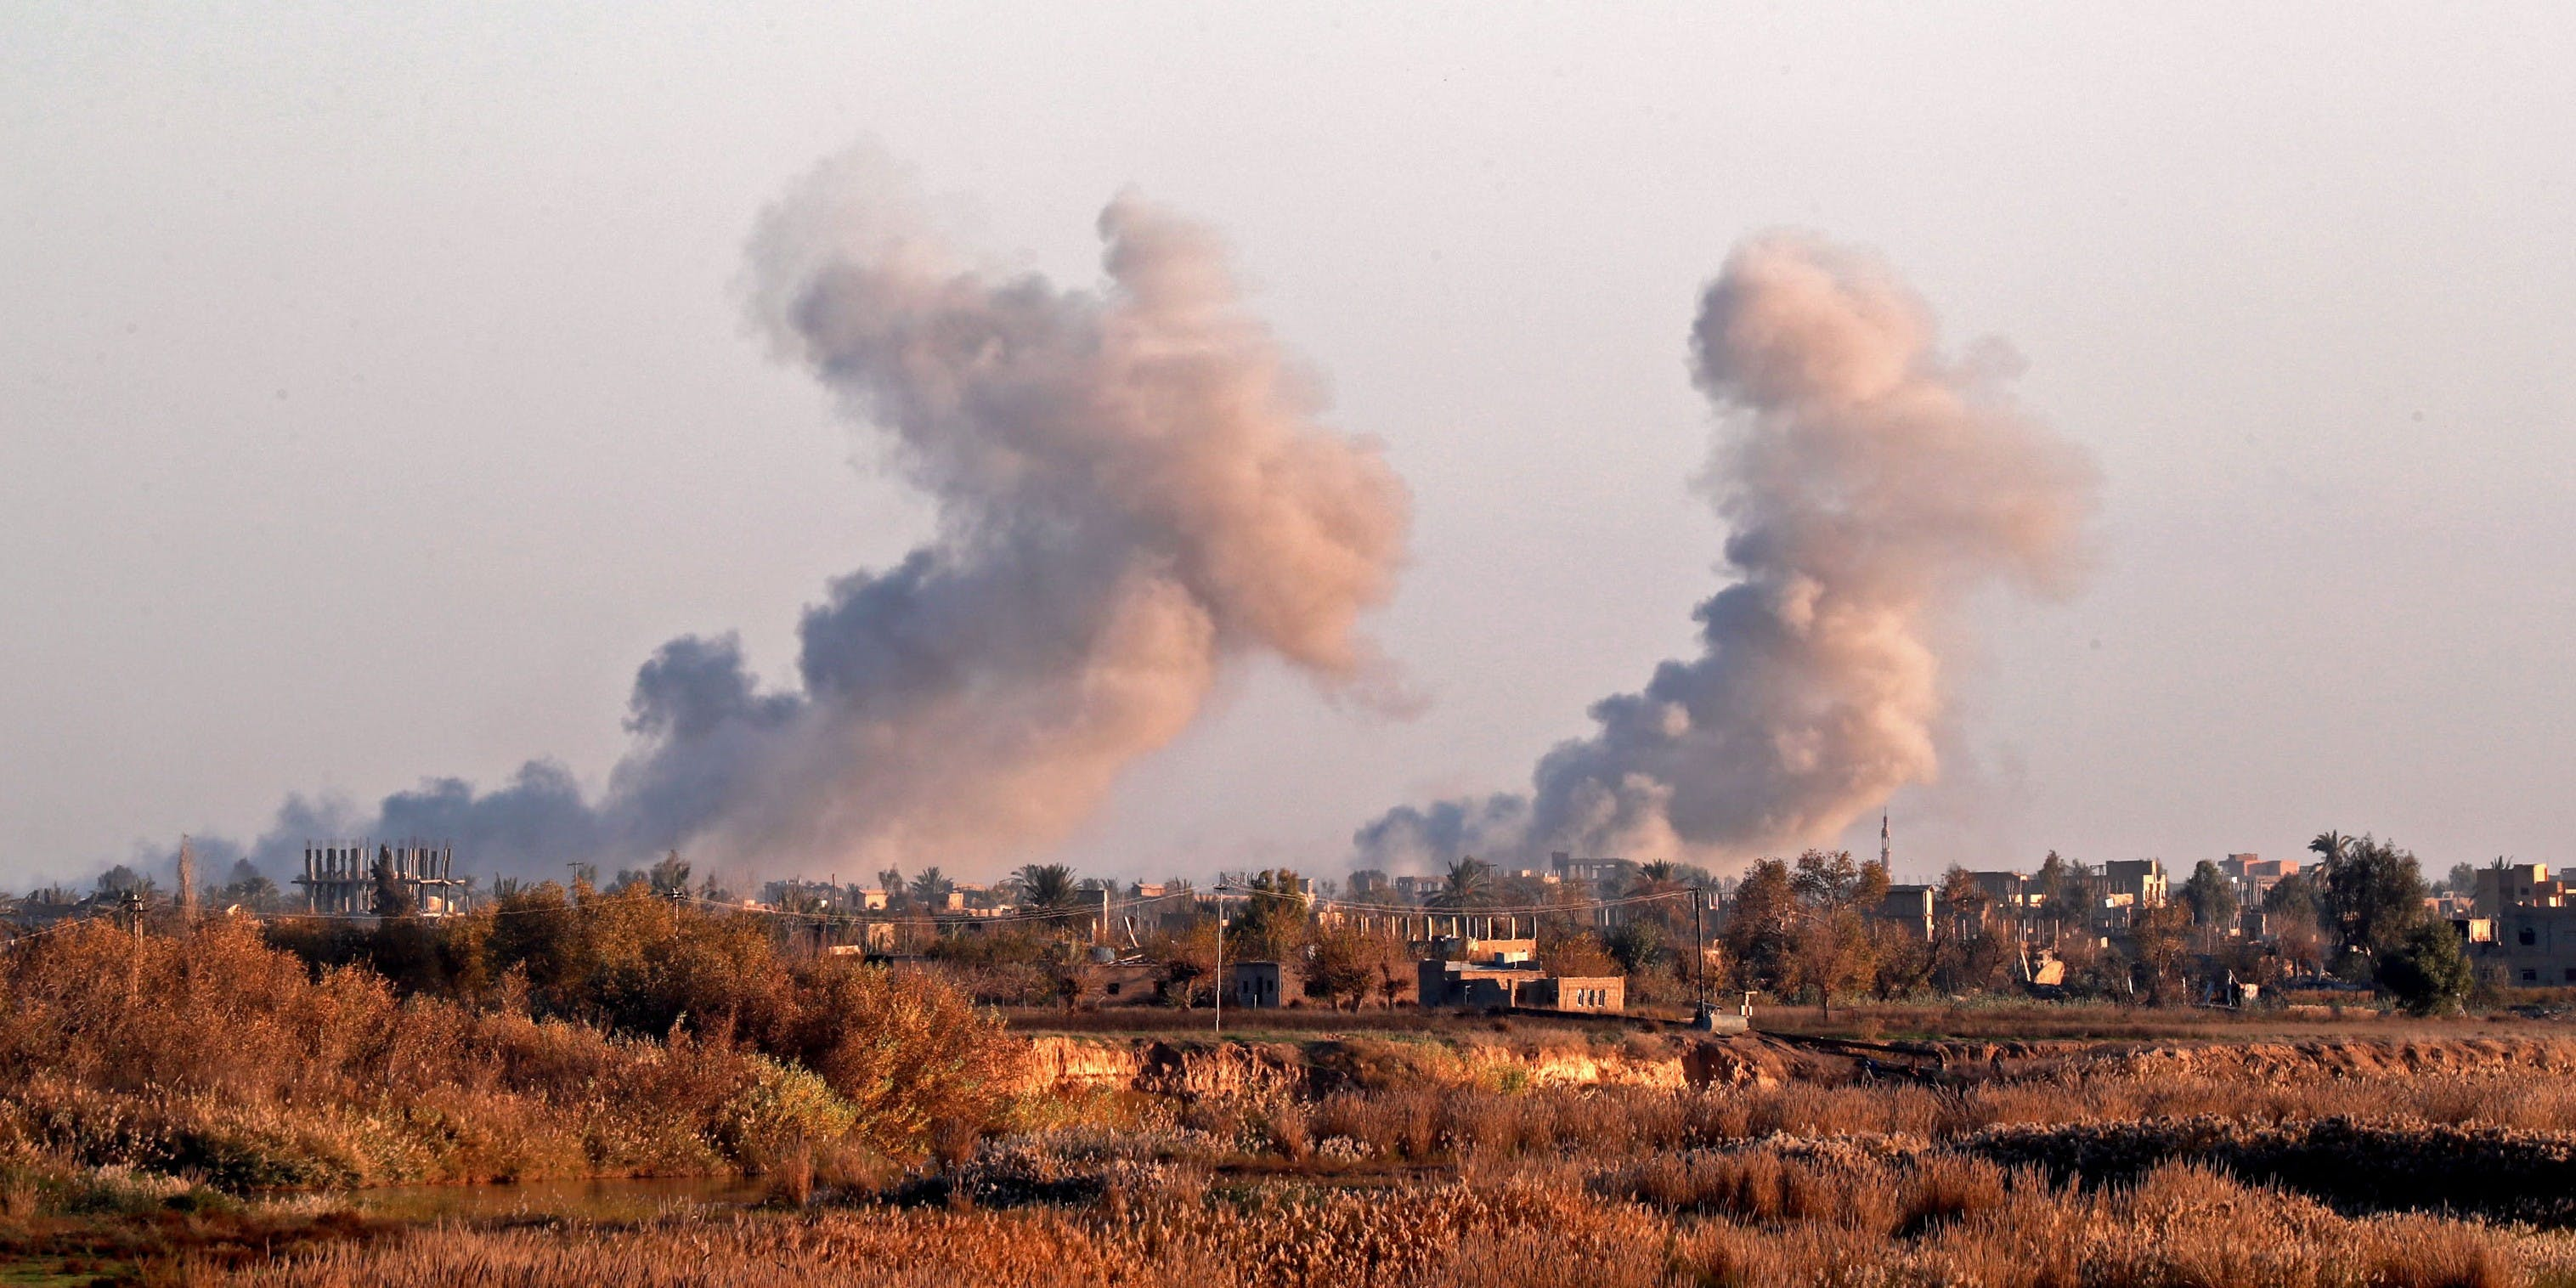 Despite Assurances From Trump, the U.S. Battle Against ISIS in Eastern Syria Is Far From Over